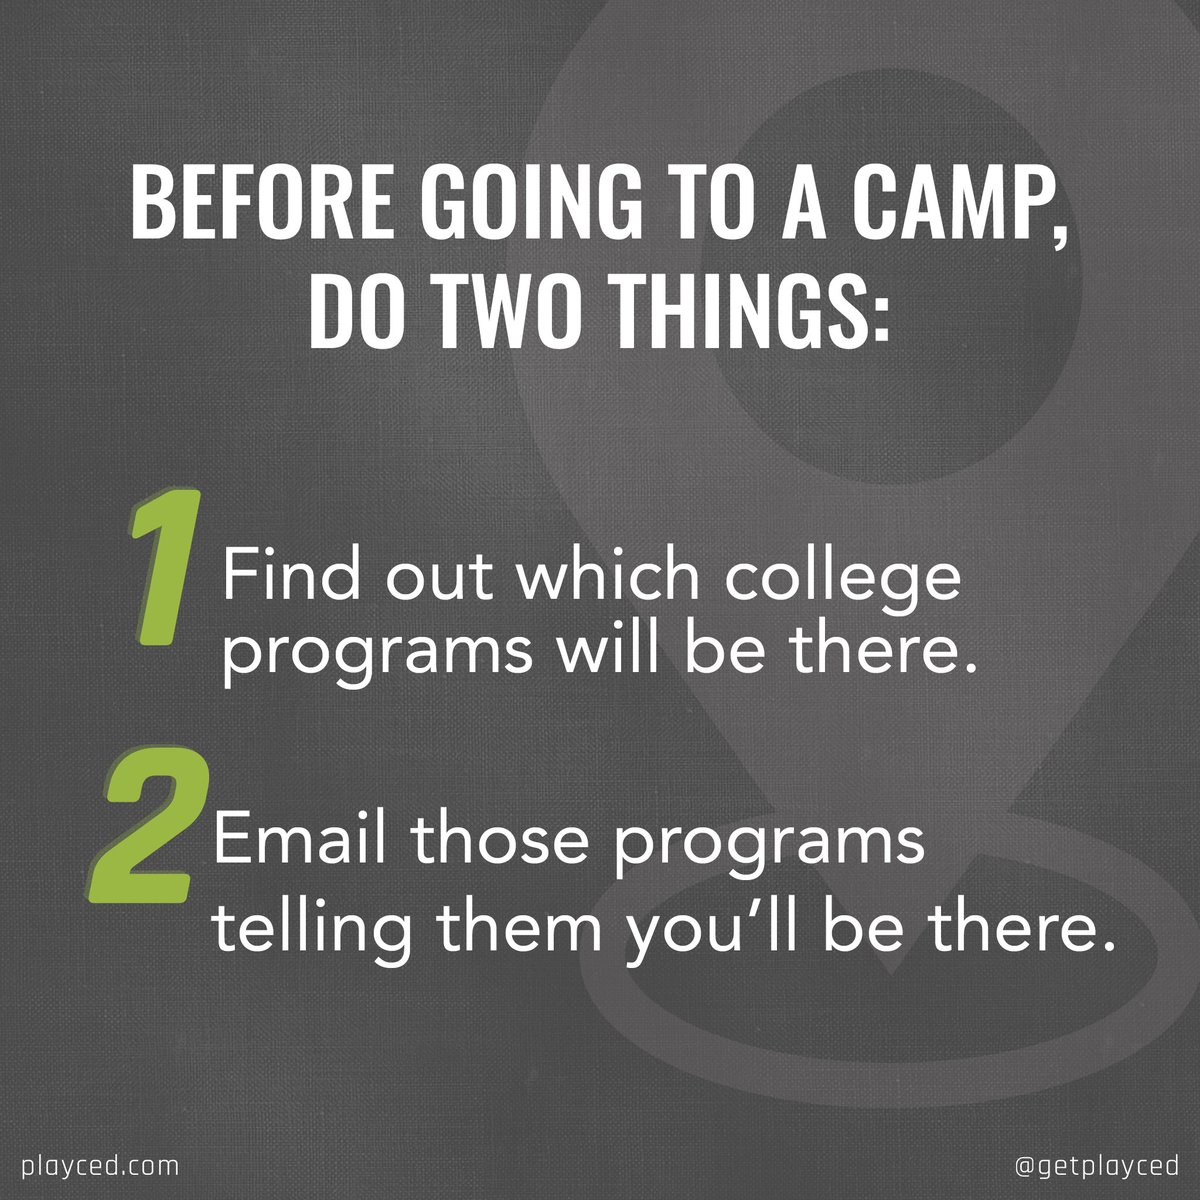 Going to a camp to get exposure? Make sure you do 1 and 2. If coaches aren't there, don't waste your $$$. Attend camps where coaches can get their eyeballs on you and let them know you'll be there! #plan2play #getplayced #recruitingtip #collegerecruiting #highschoolathletepic.twitter.com/f8mdNmcCTF